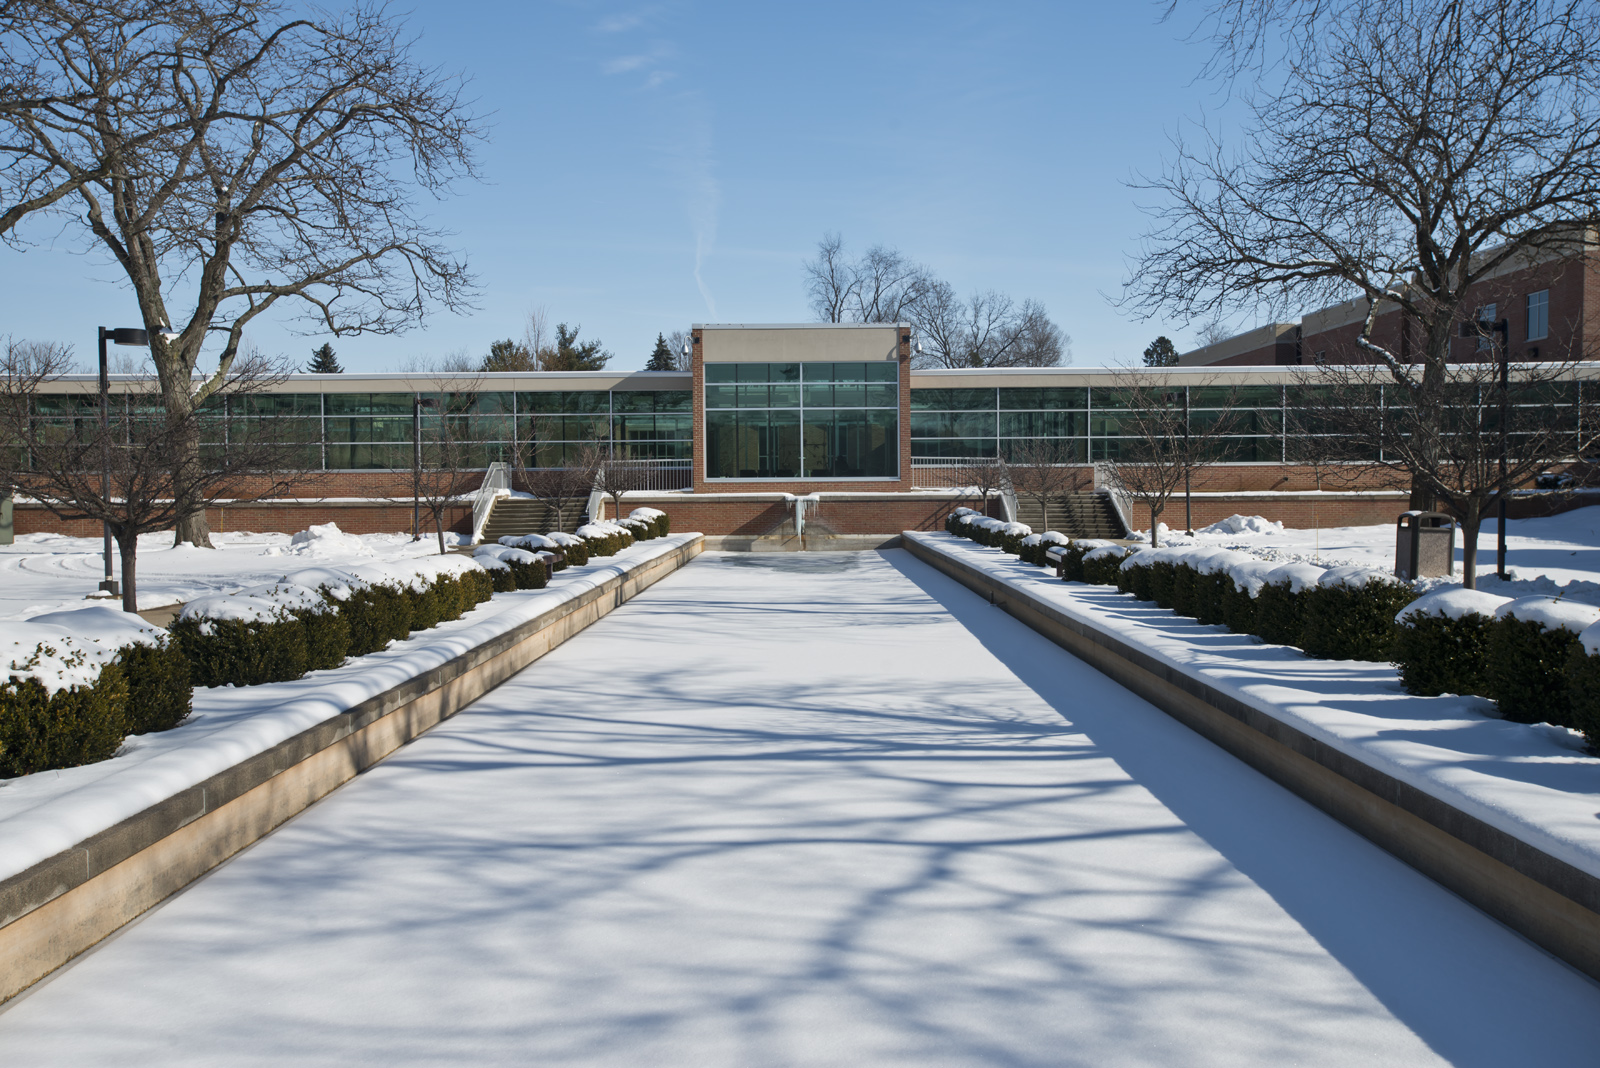 A sunny, snowy day on KCC's North Avenue campus.